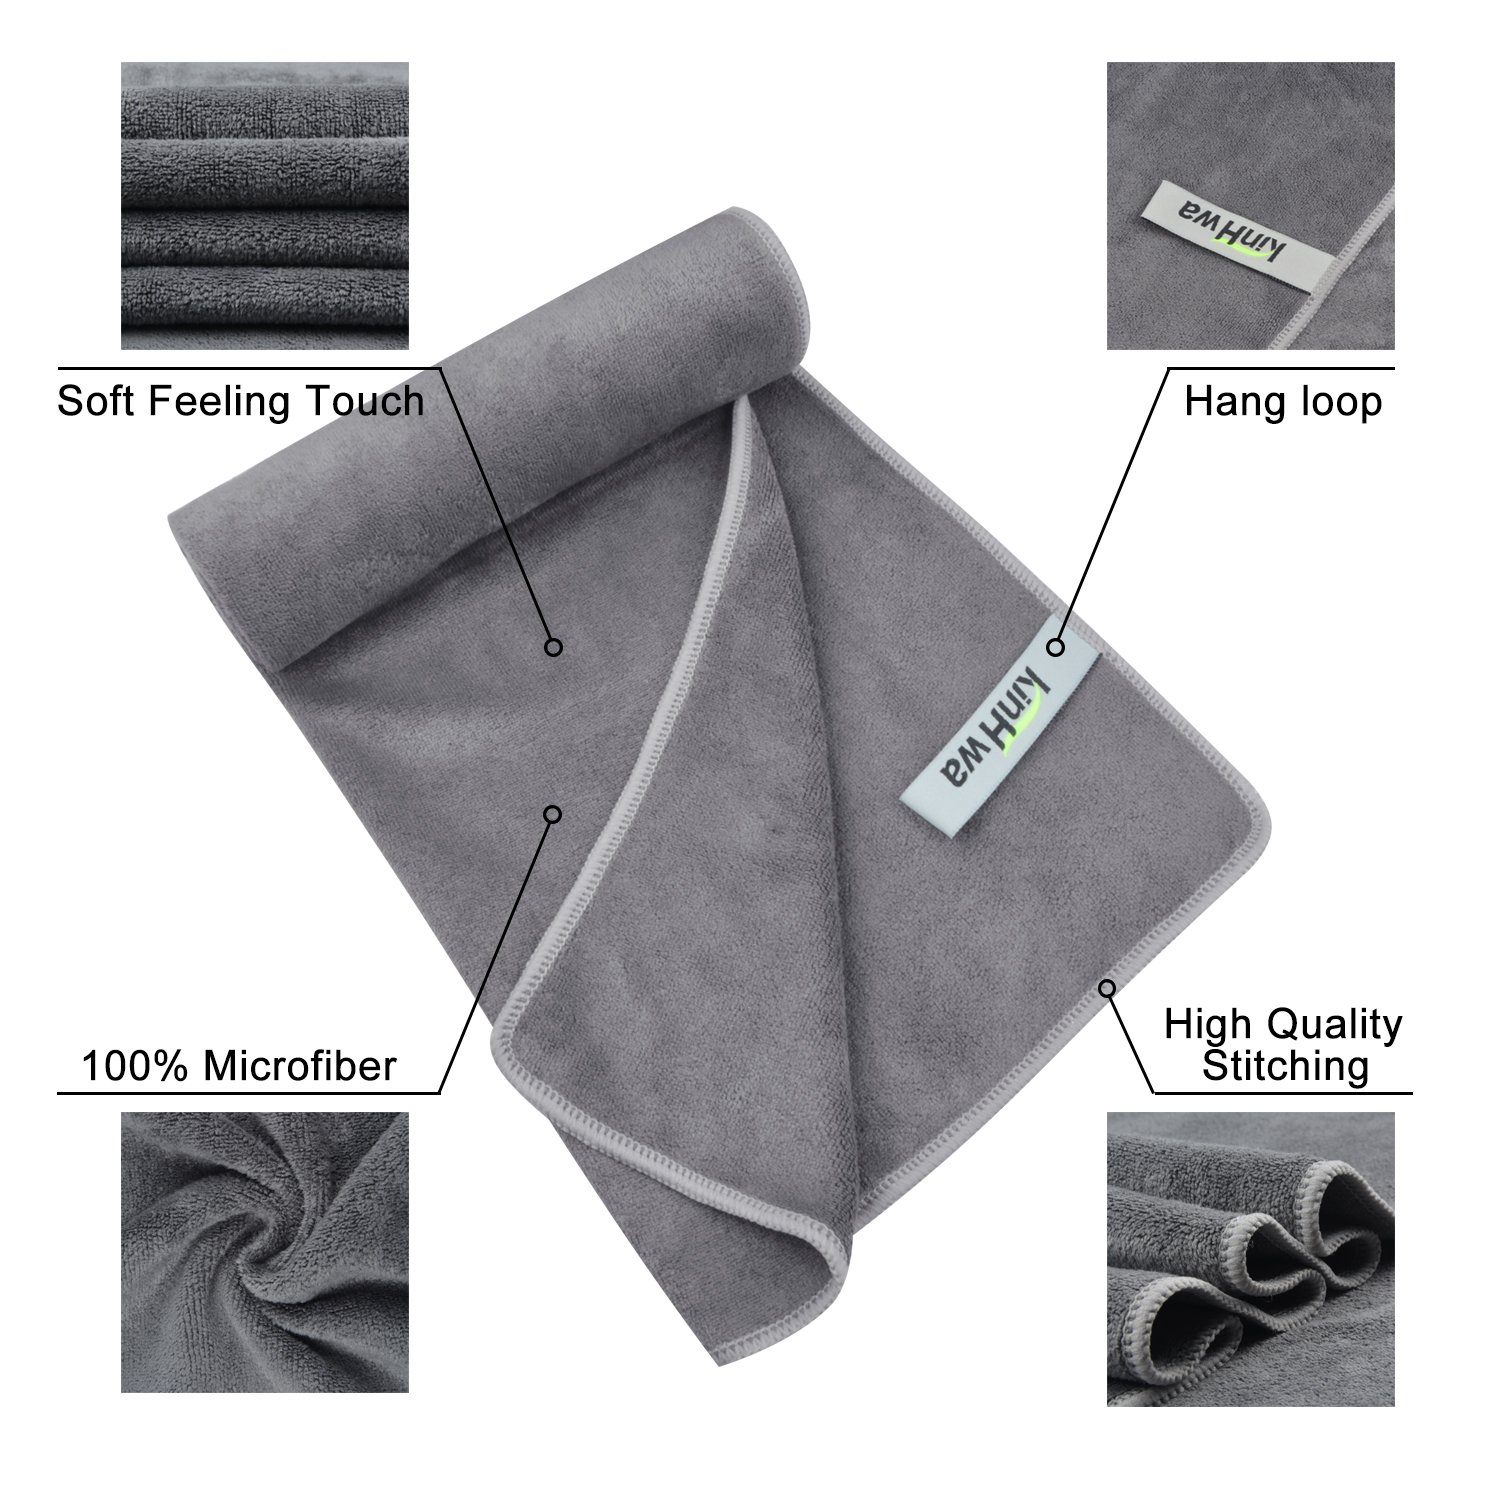 KinHwa Microfiber Sports Gym Towel Fast Drying Fitness Sweat Towels Multi-Purpose Workout Towel for Men and Women 3 Pack 16Inch x 31Inch